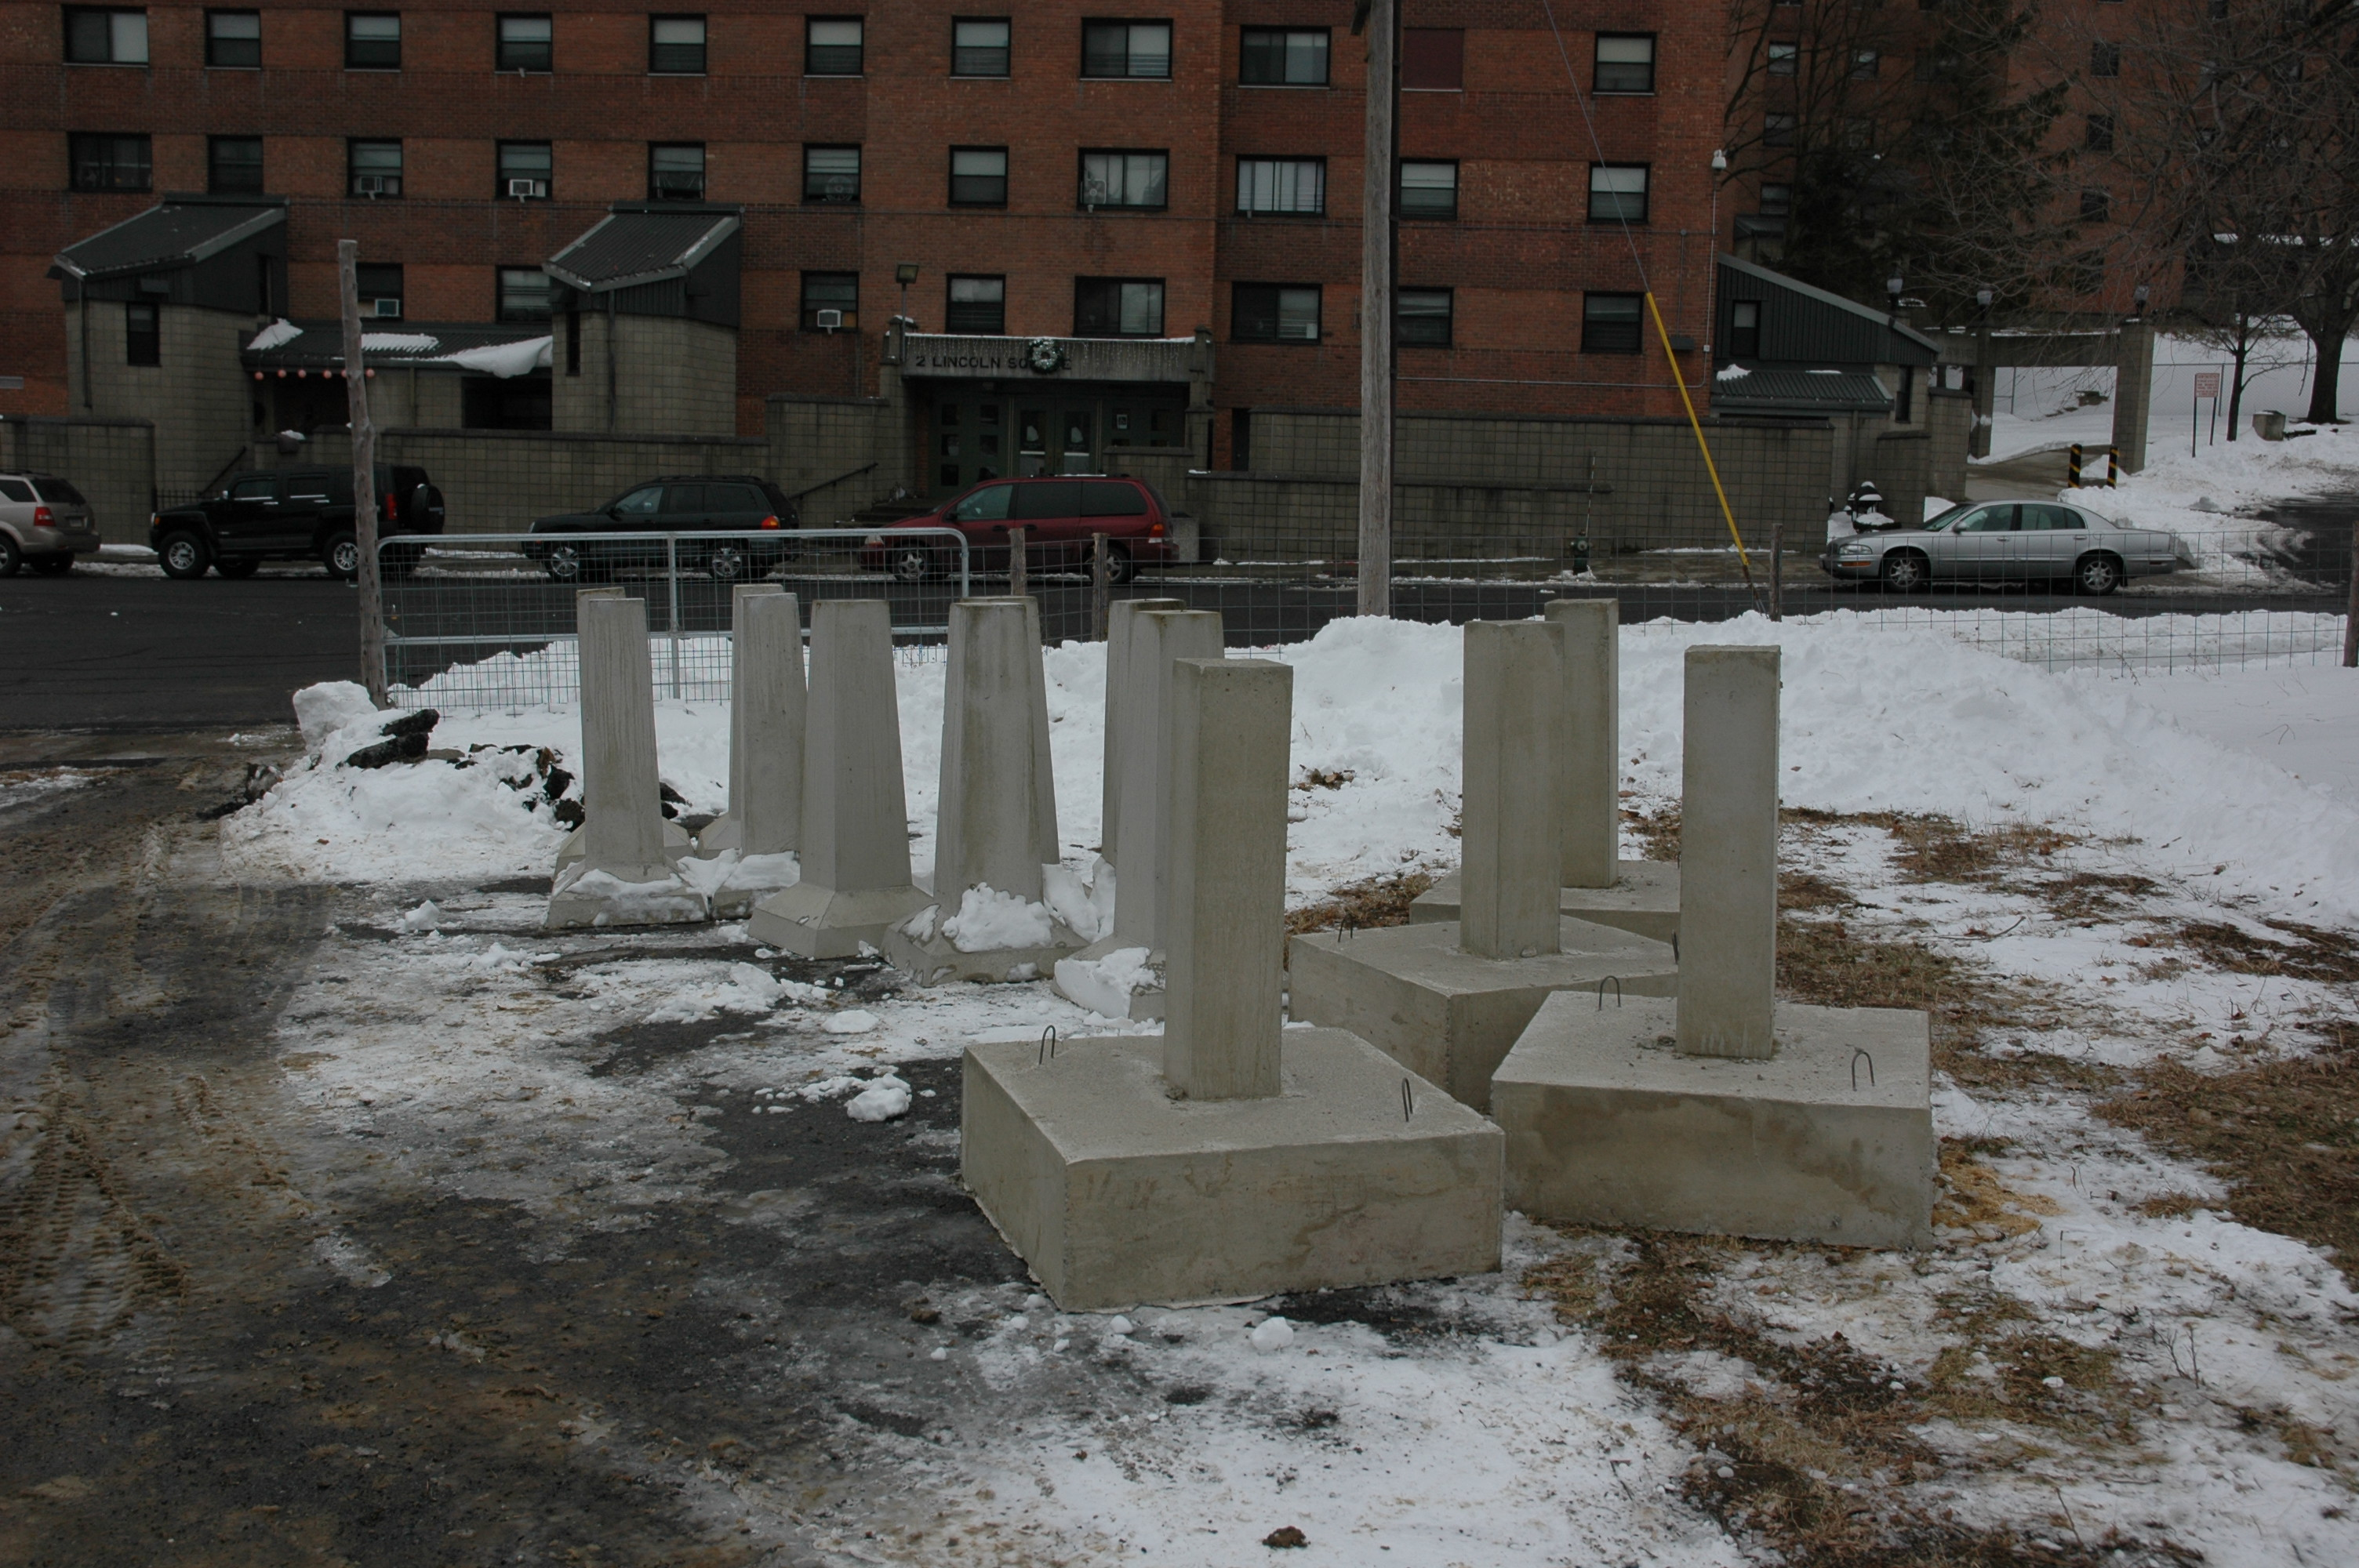 Precast Concrete Piers | Concrete Pier Block with Metal Bracket | Cement Piers